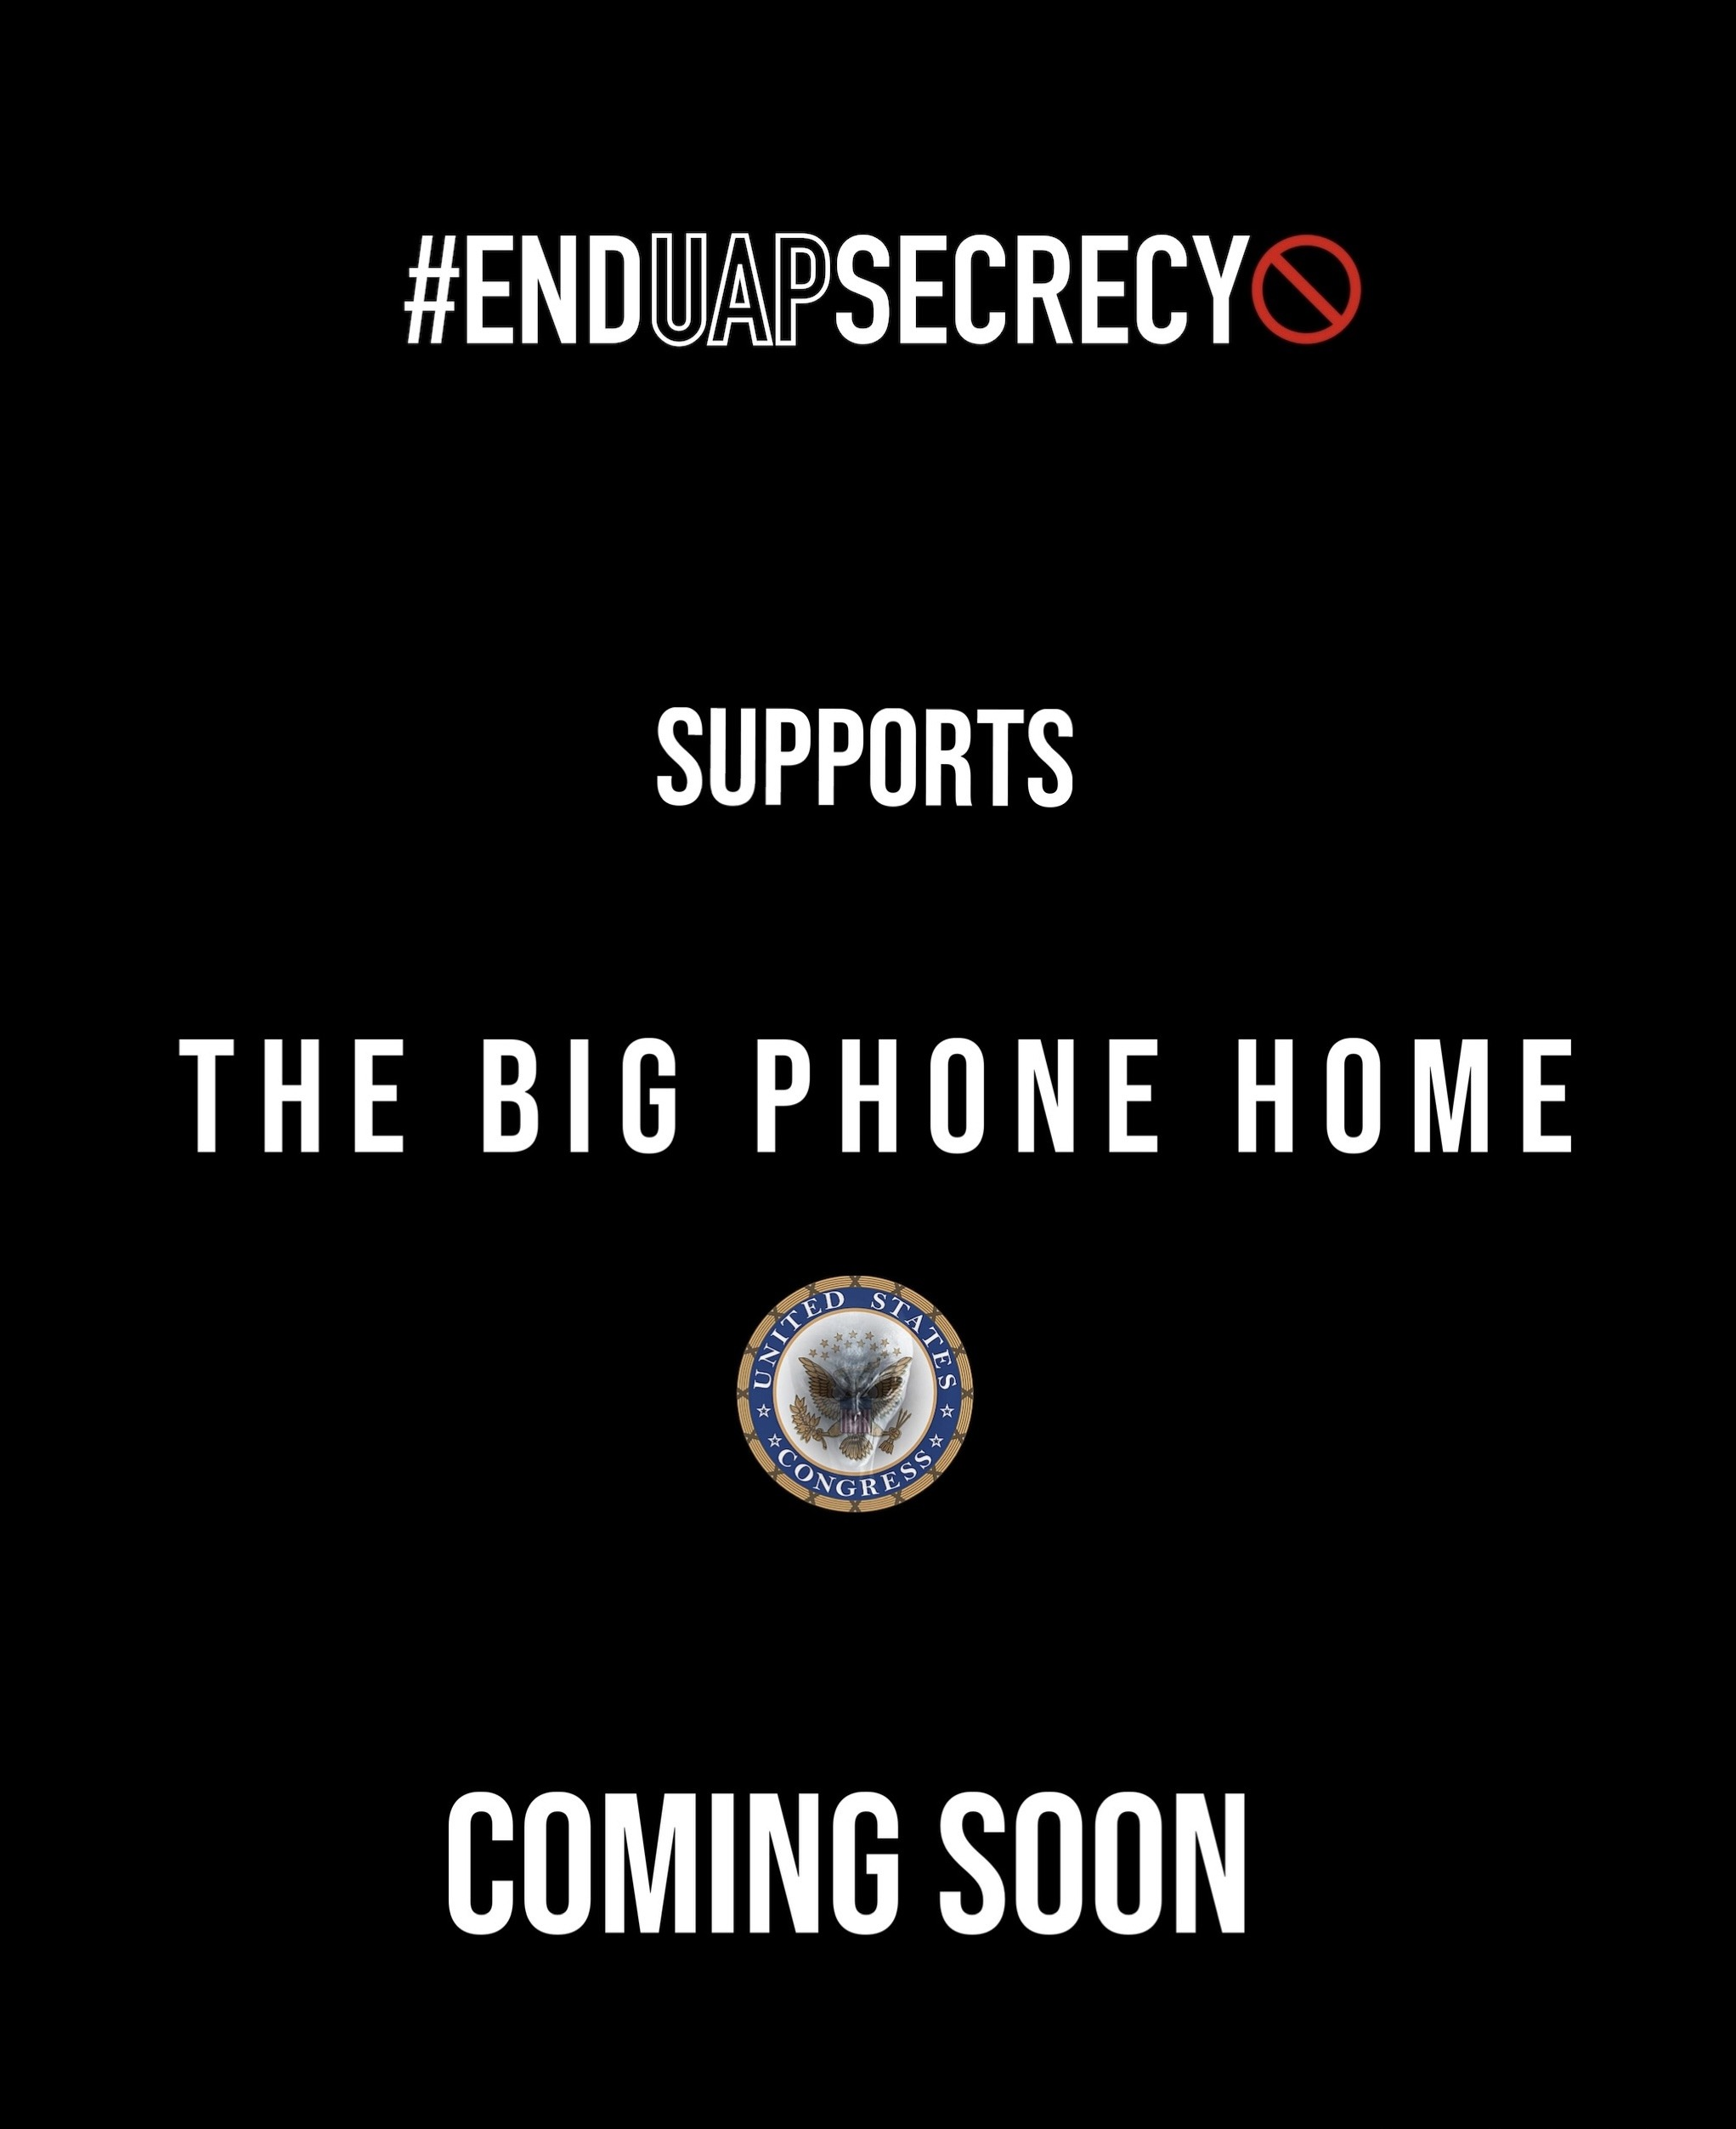 'The Big Phone Home' project and reframing Ufology to UAP - The Unidentified